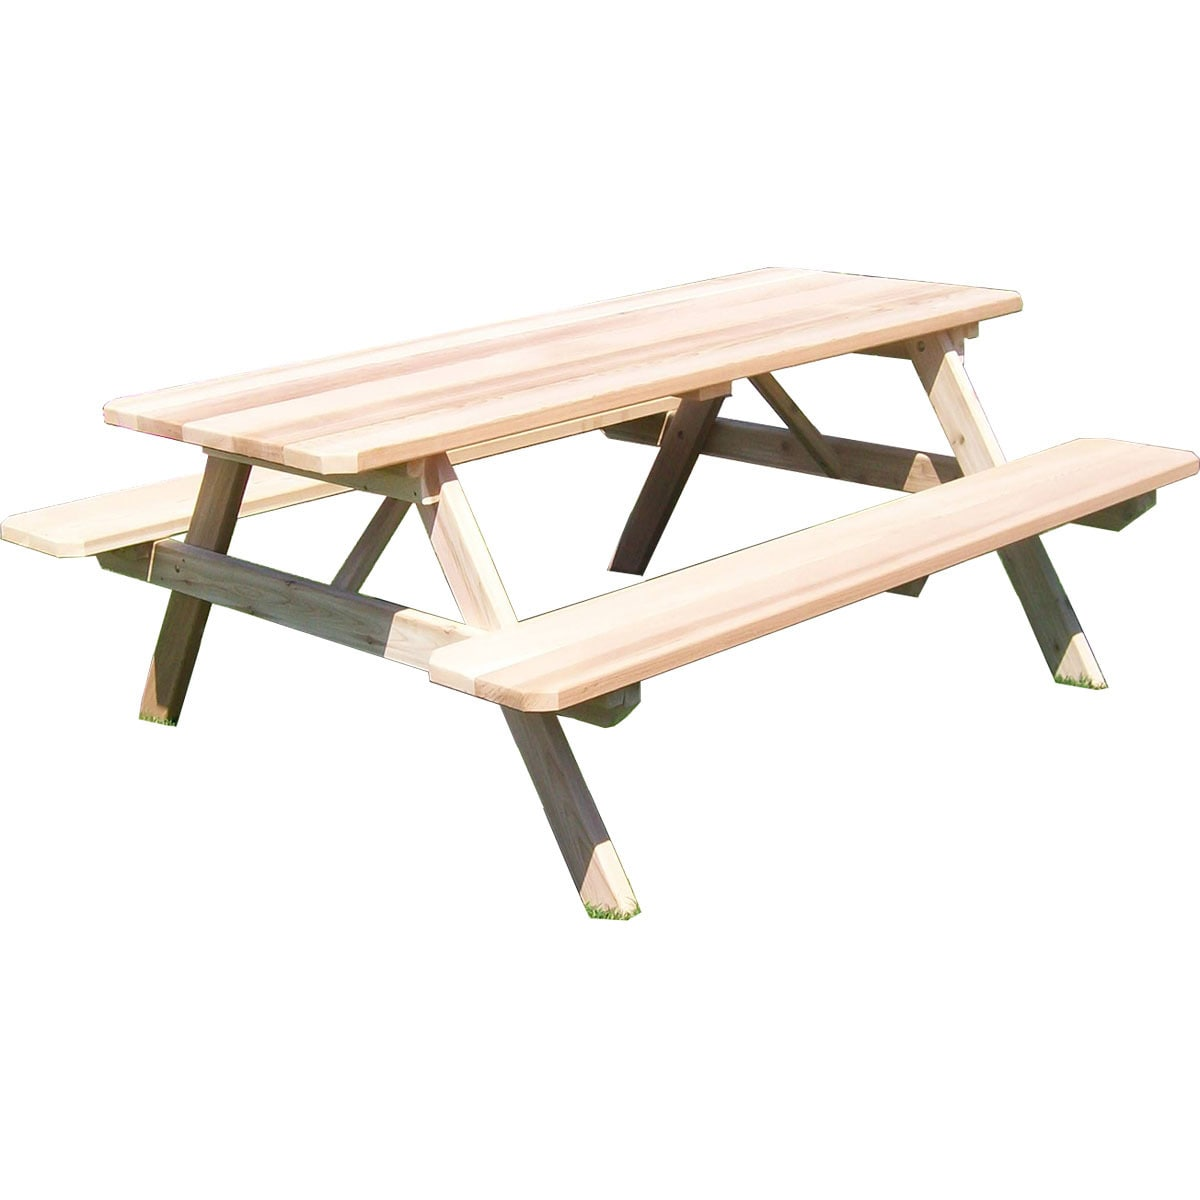 Wondrous Classic Cedar Picnic Table With Attached Benches Beatyapartments Chair Design Images Beatyapartmentscom